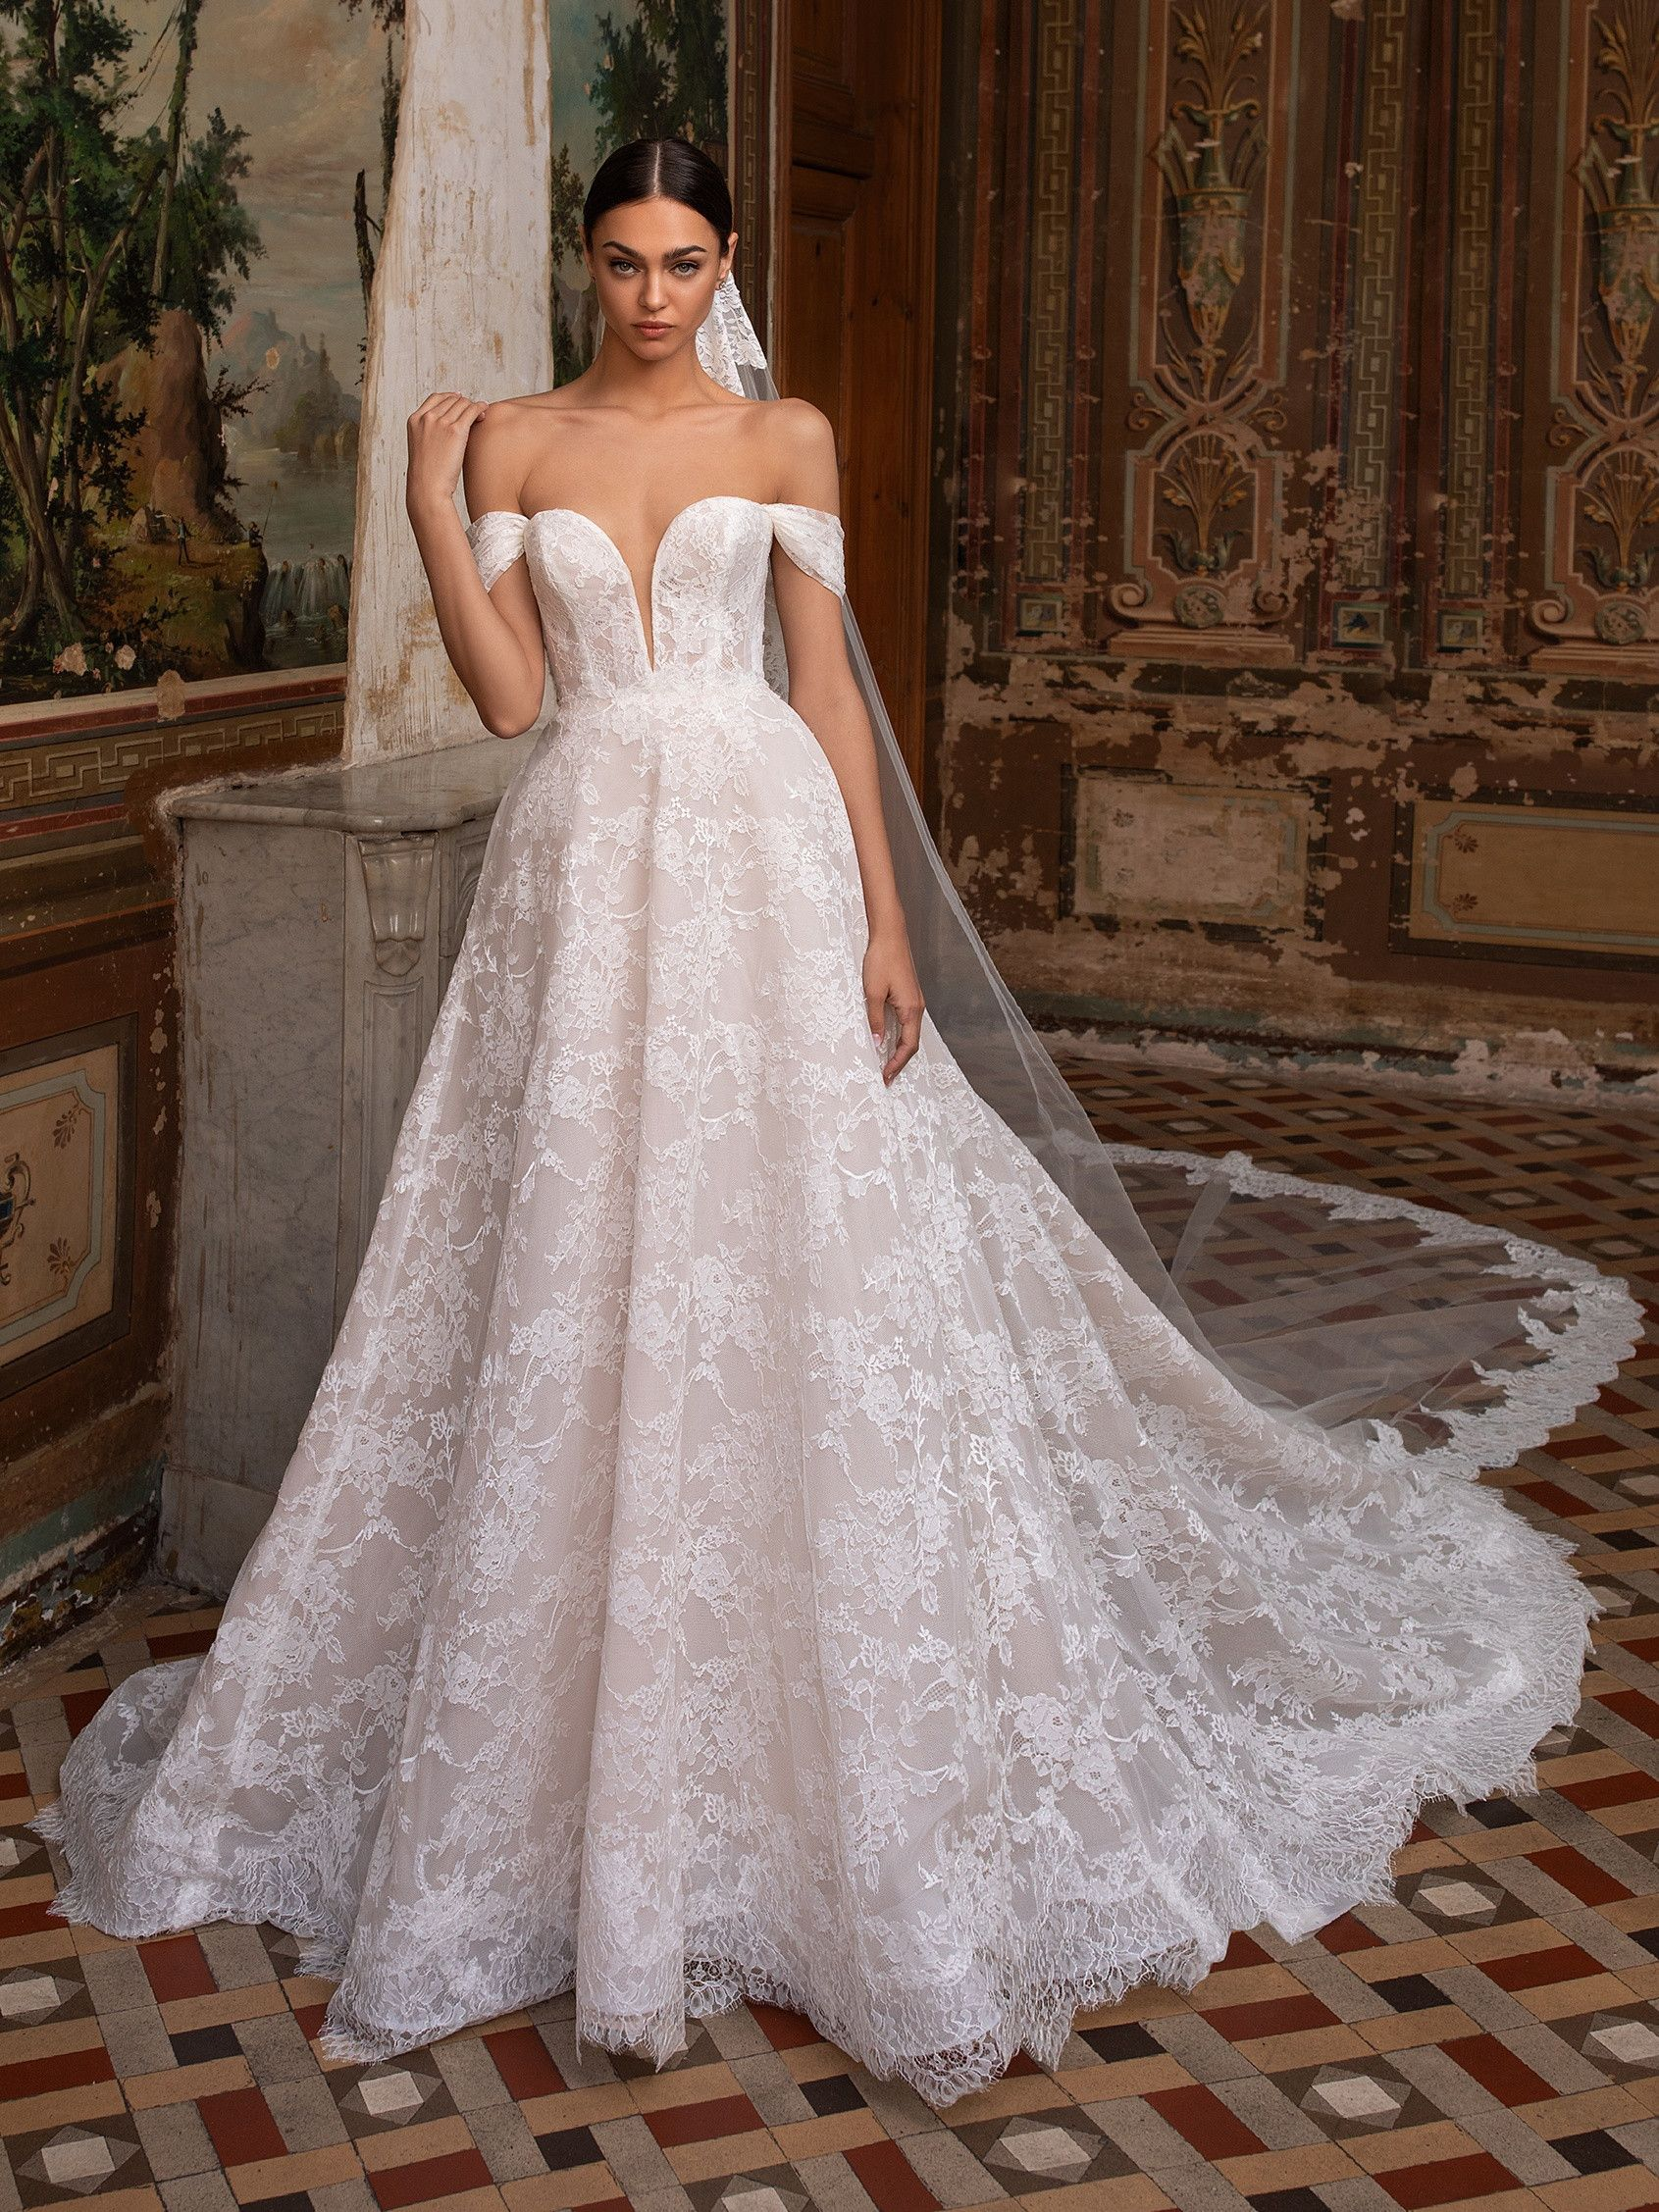 Shine With Your Own Light In Our Princess Wedding Dress With Off The Shoulder Sleeves Dis In 2020 Ball Gowns Wedding Wedding Dresses Kleinfeld Pronovias Wedding Dress